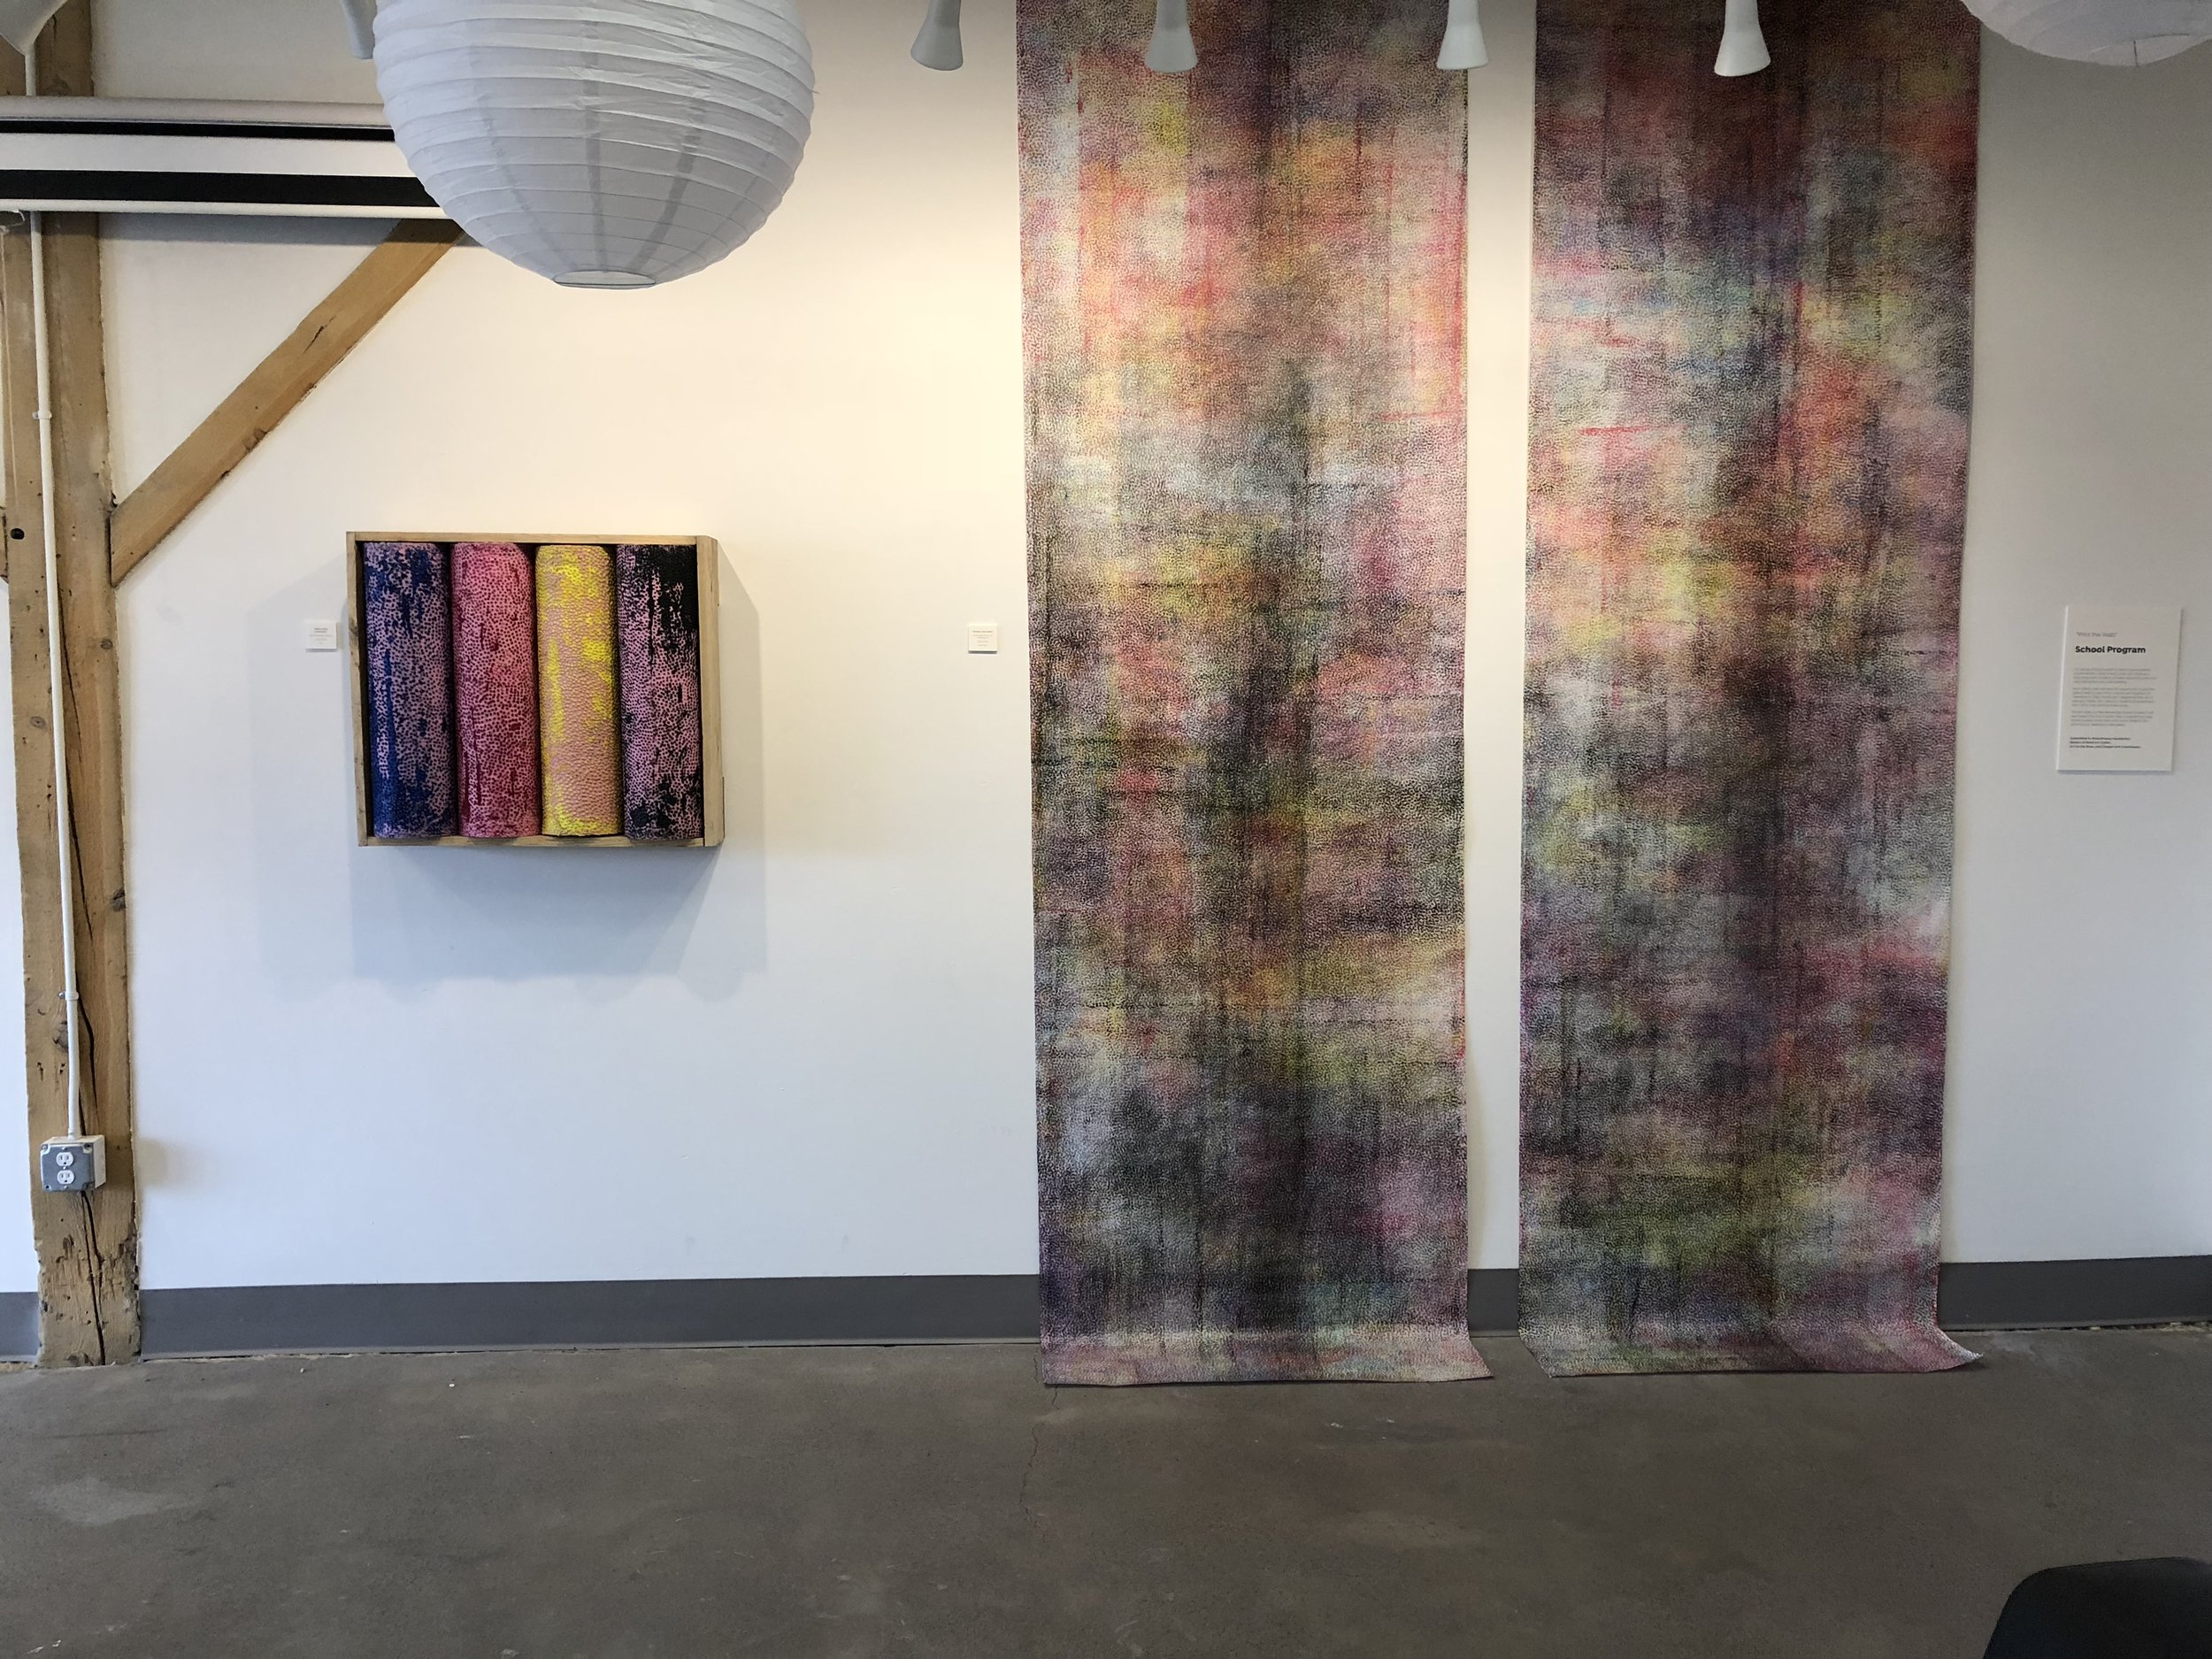 Installation view from Bend Art Center. Image courtesy of the artist.